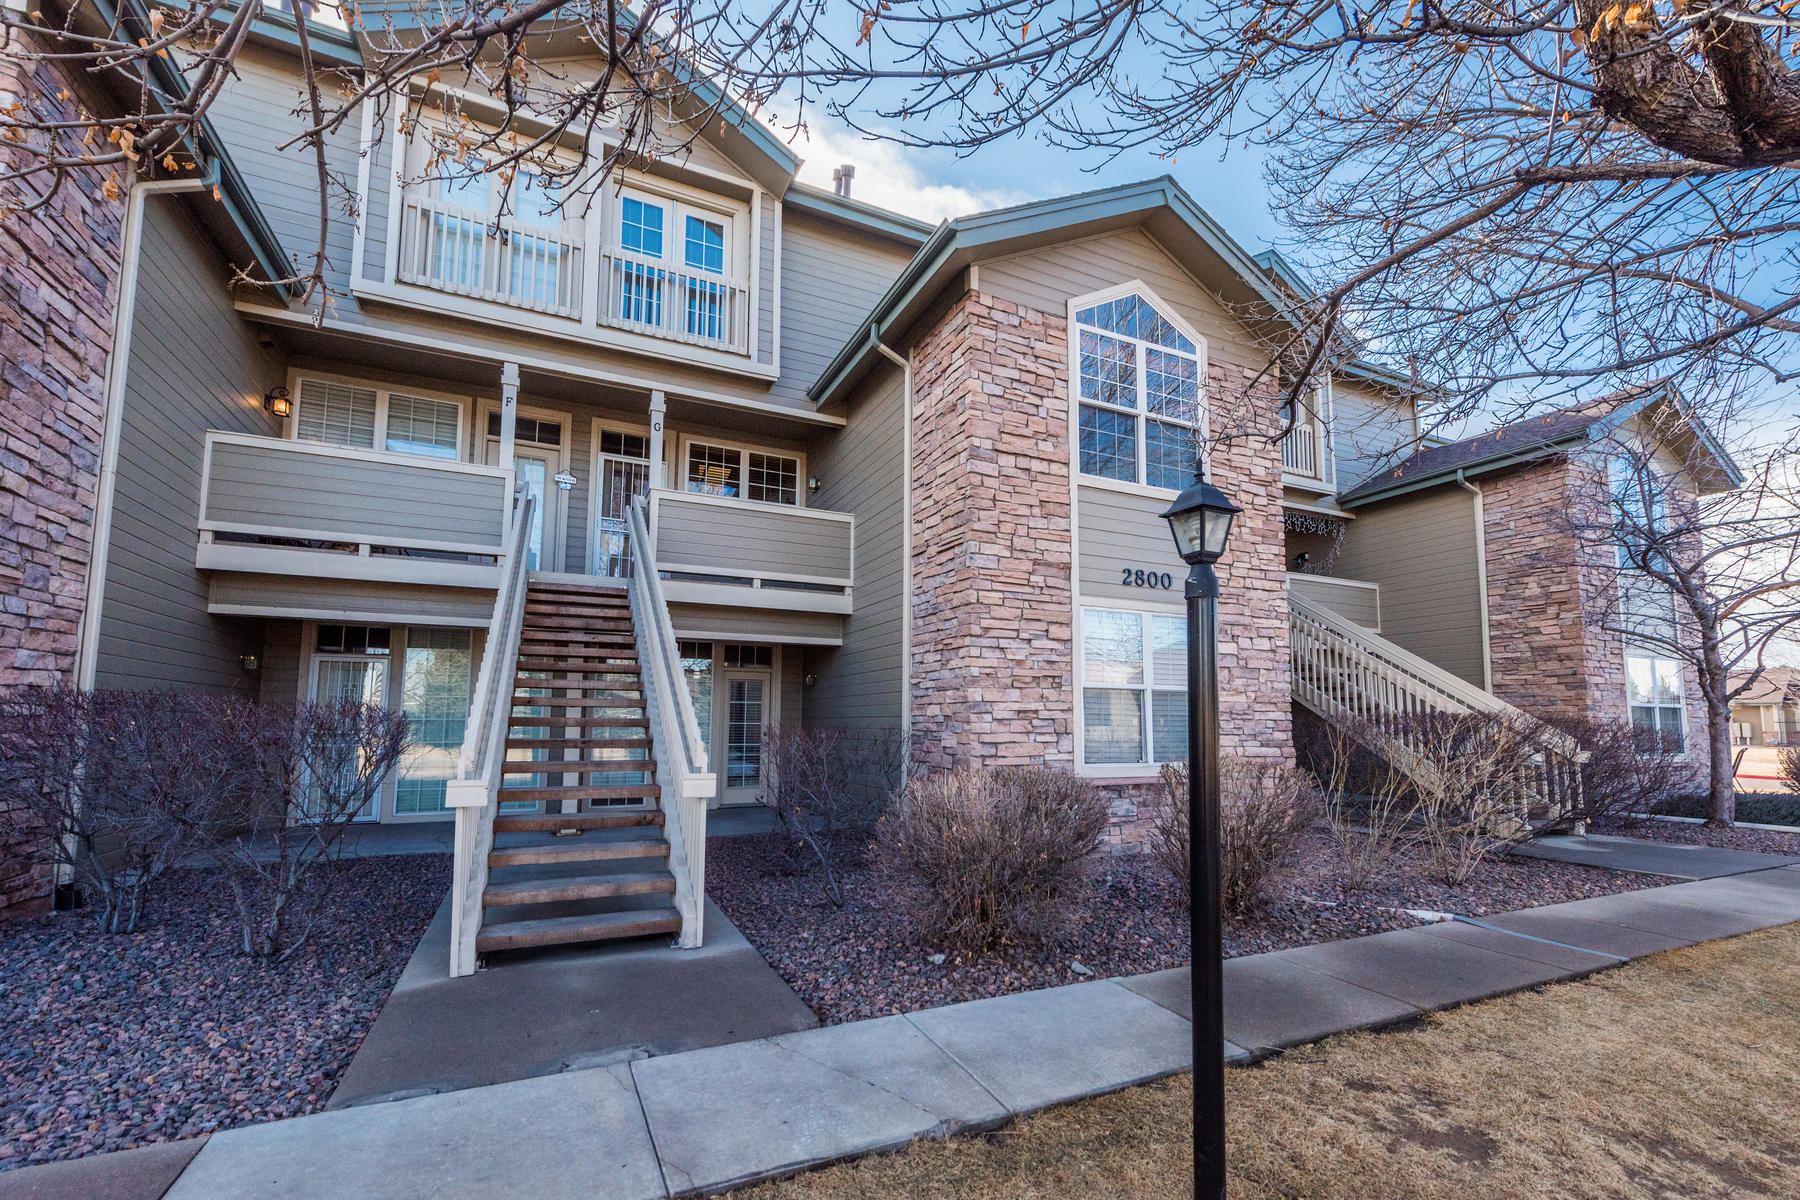 Additional photo for property listing at Wonderful Two Bedroom Plus Loft Penthouse Condo 2800 West Centennial Drive Unit G Littleton, Colorado 80123 United States